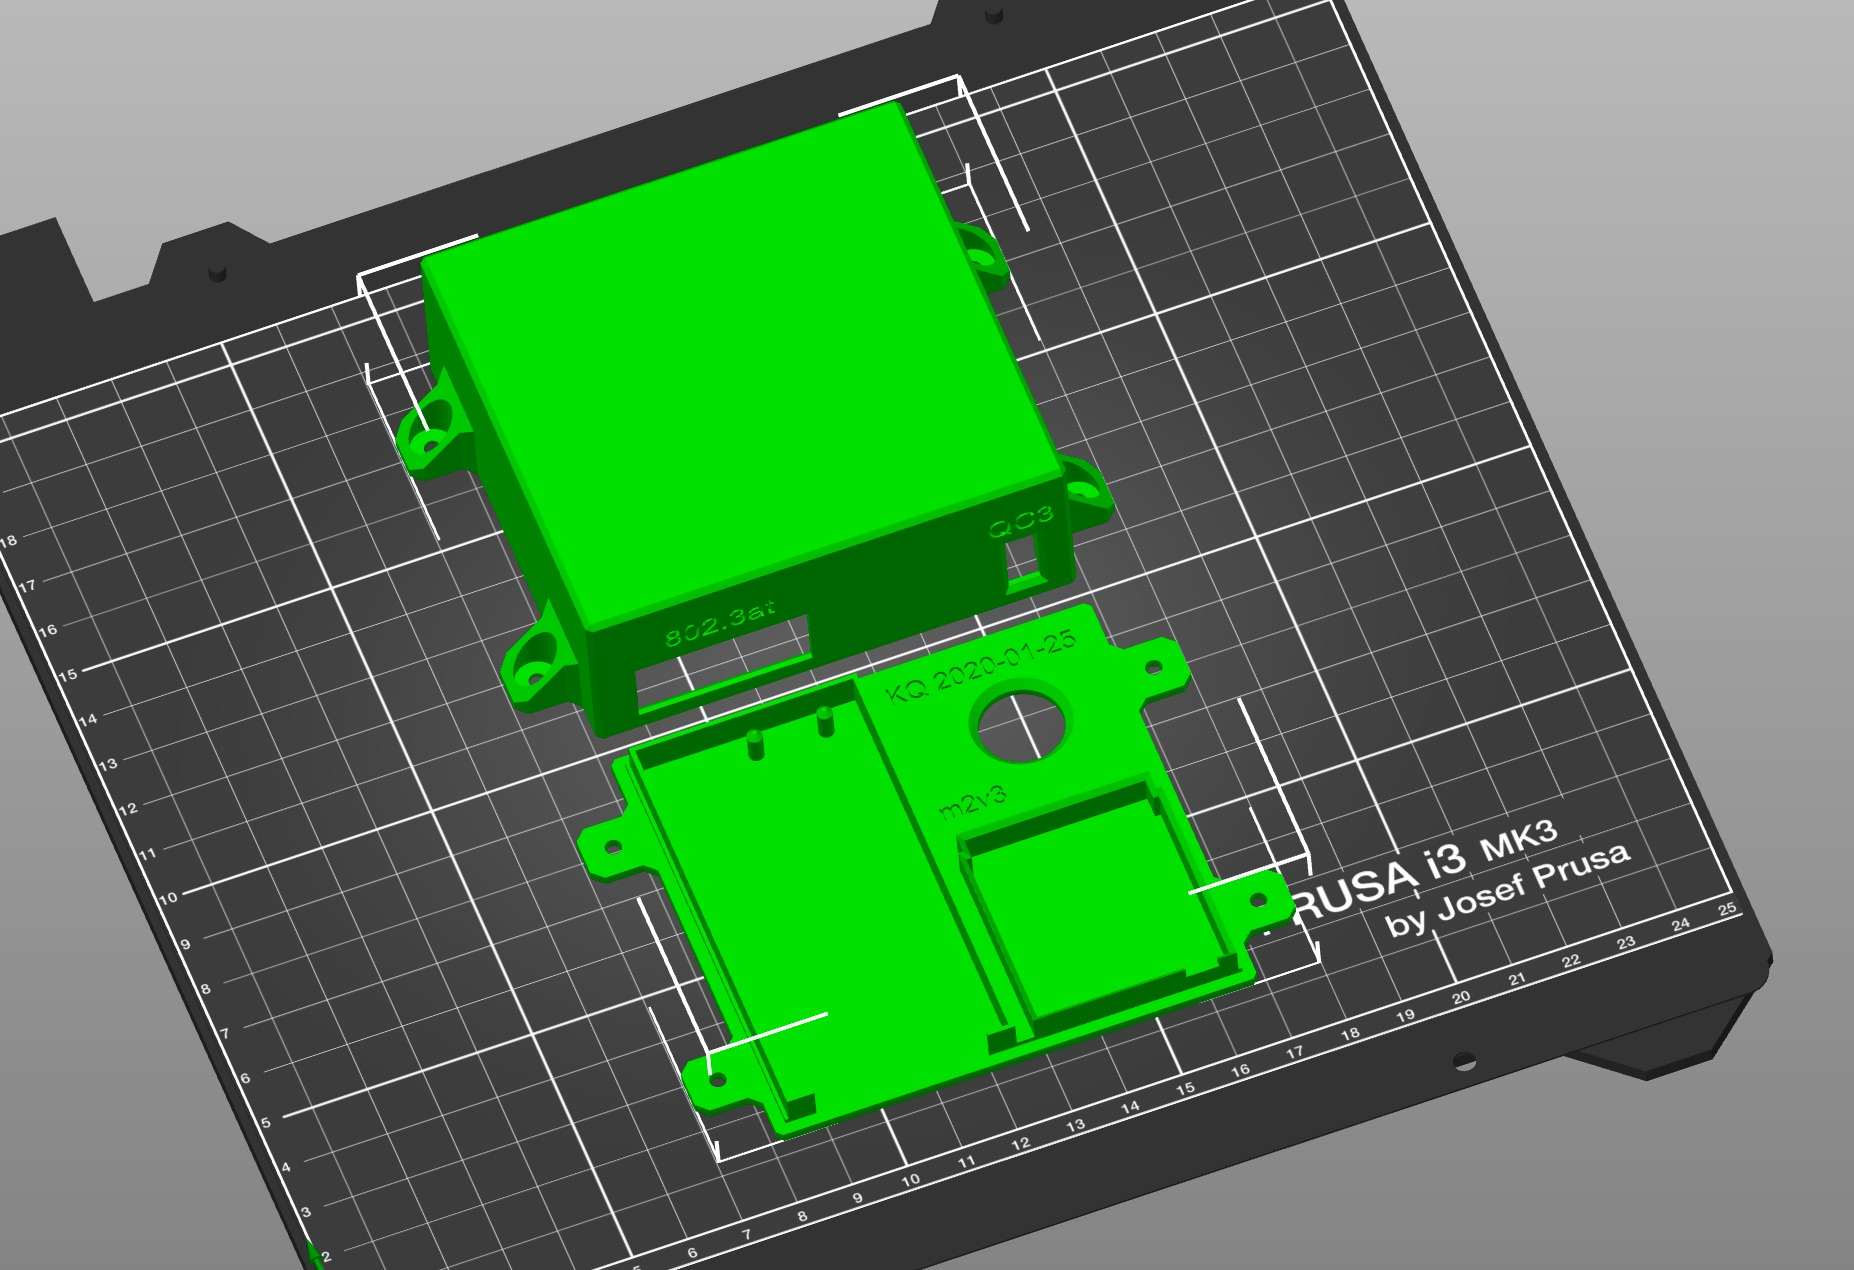 picture of components arranged on print bed